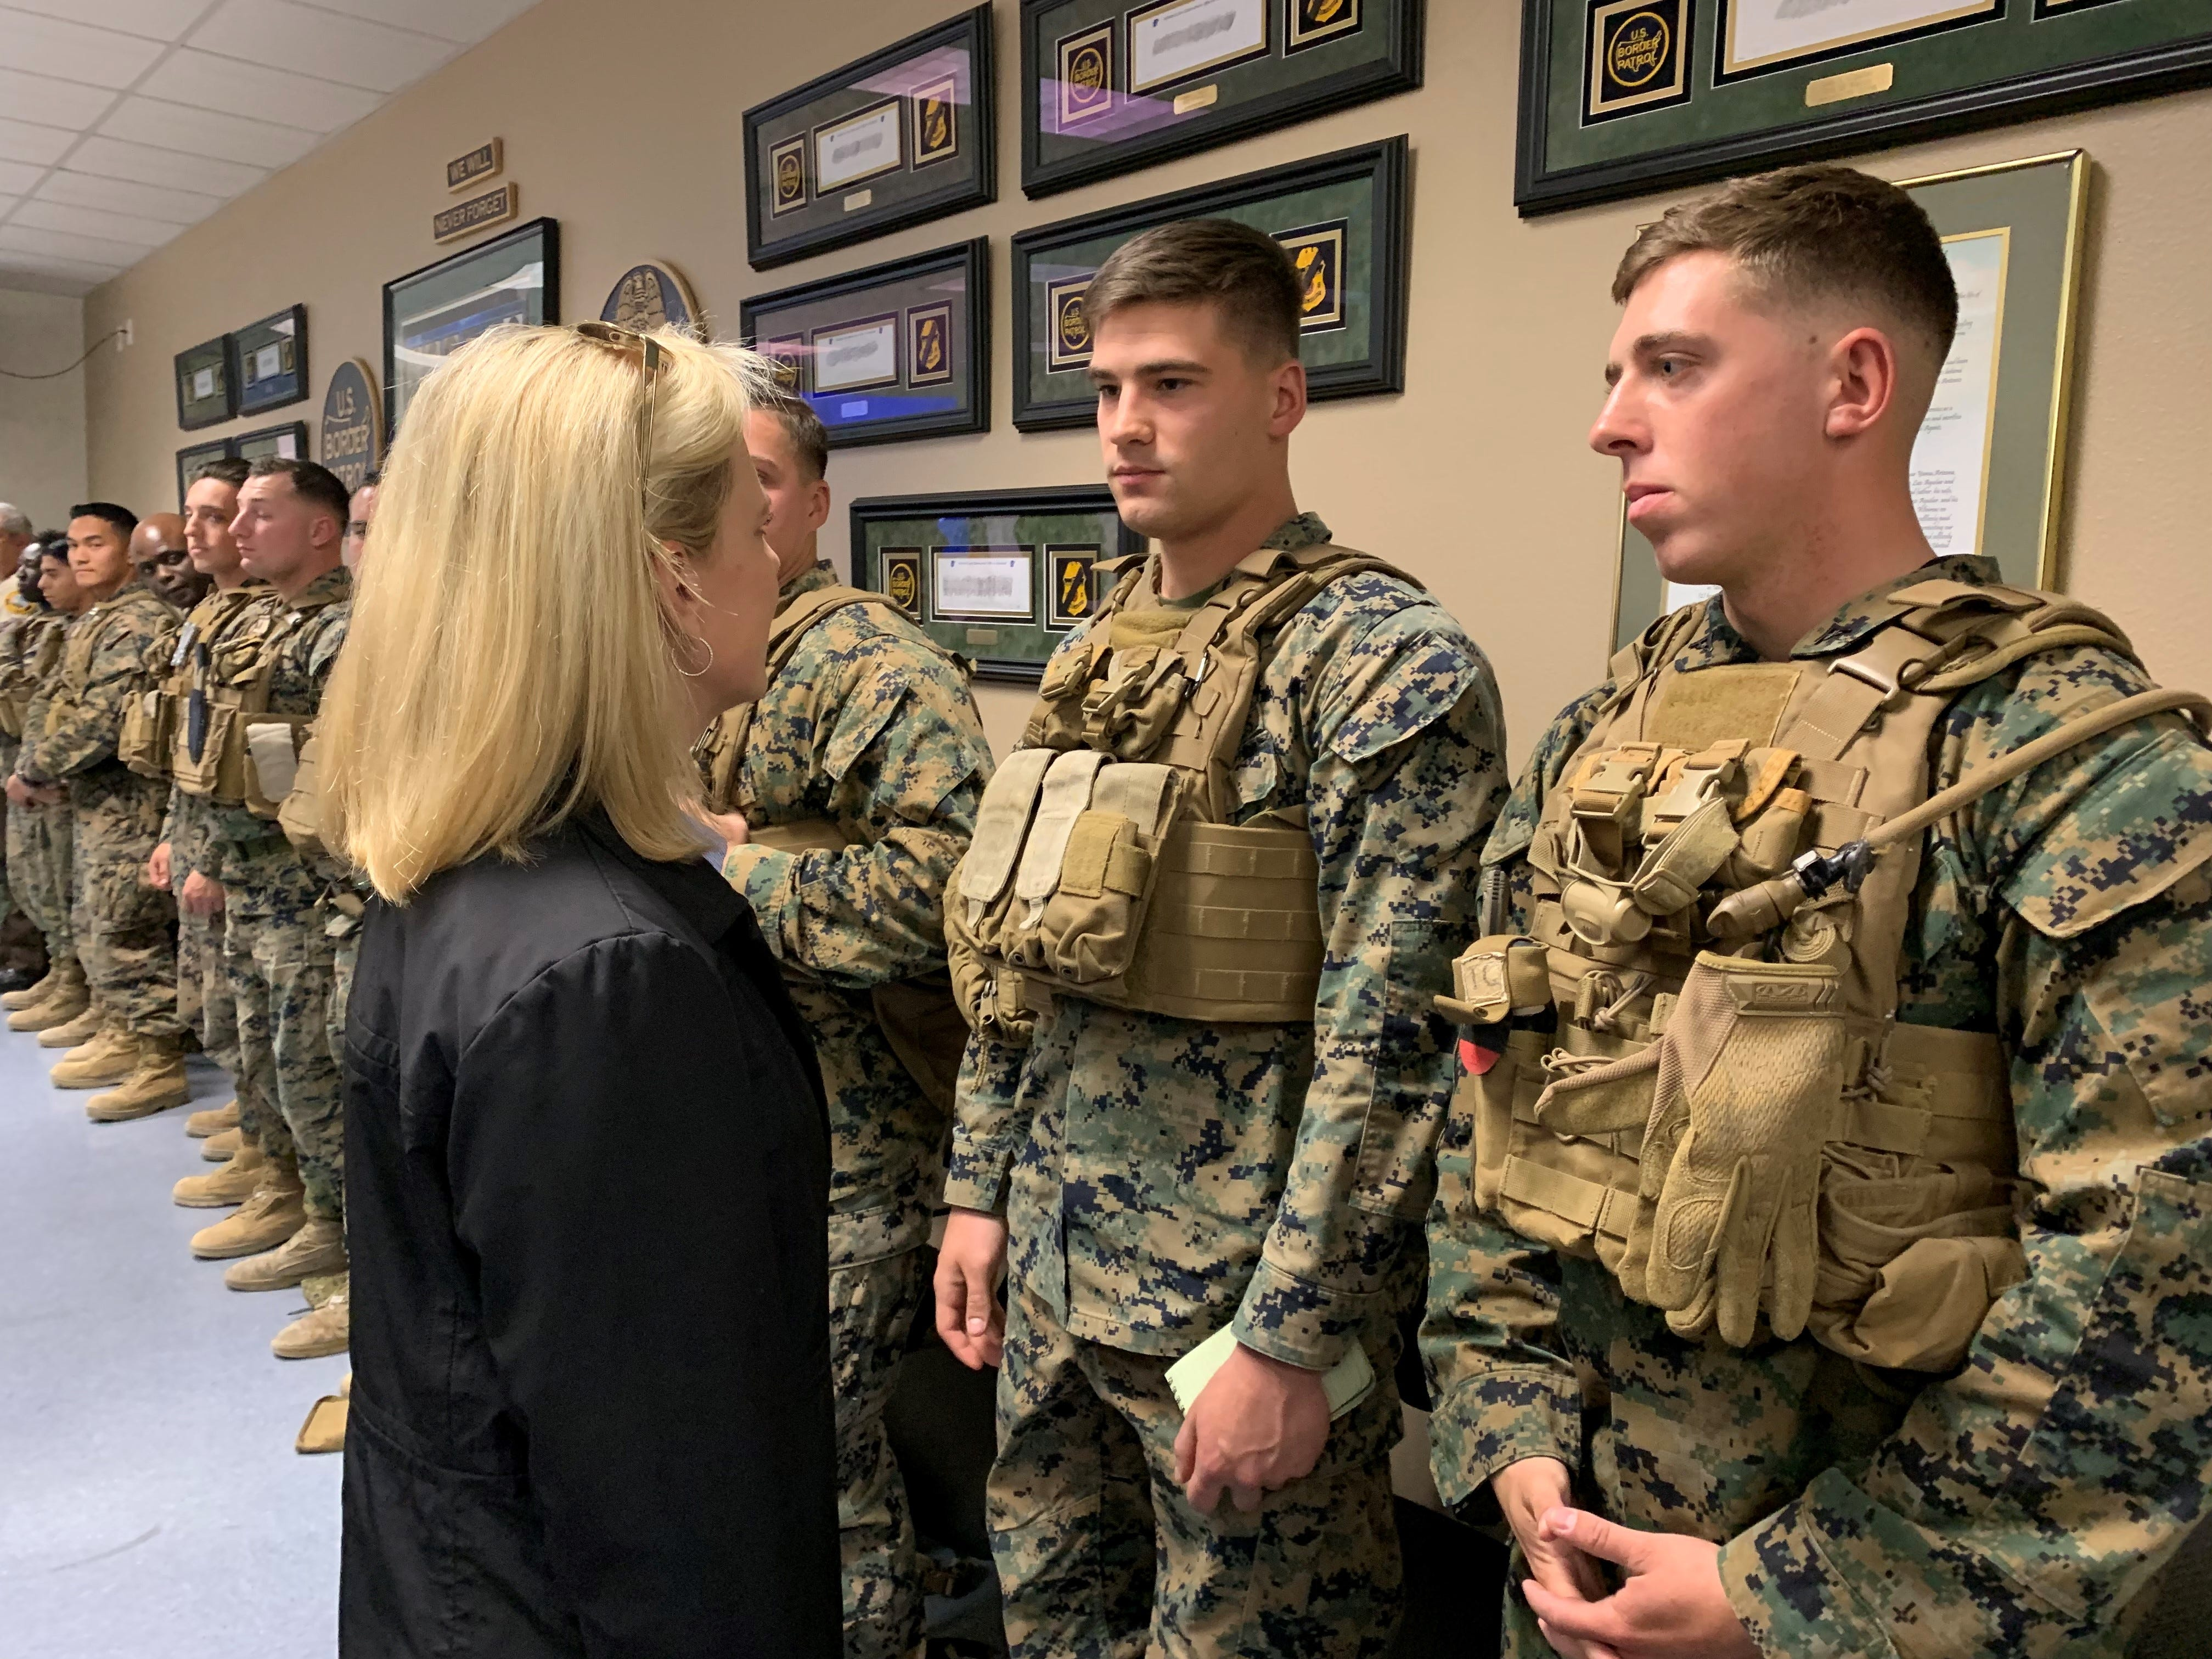 Homeland Sec. Kirstjen Nielsen greets U.S. Marines deployed to Yuma to help Border Patrol, during her fourth visit to this border community on April 4, 2019.